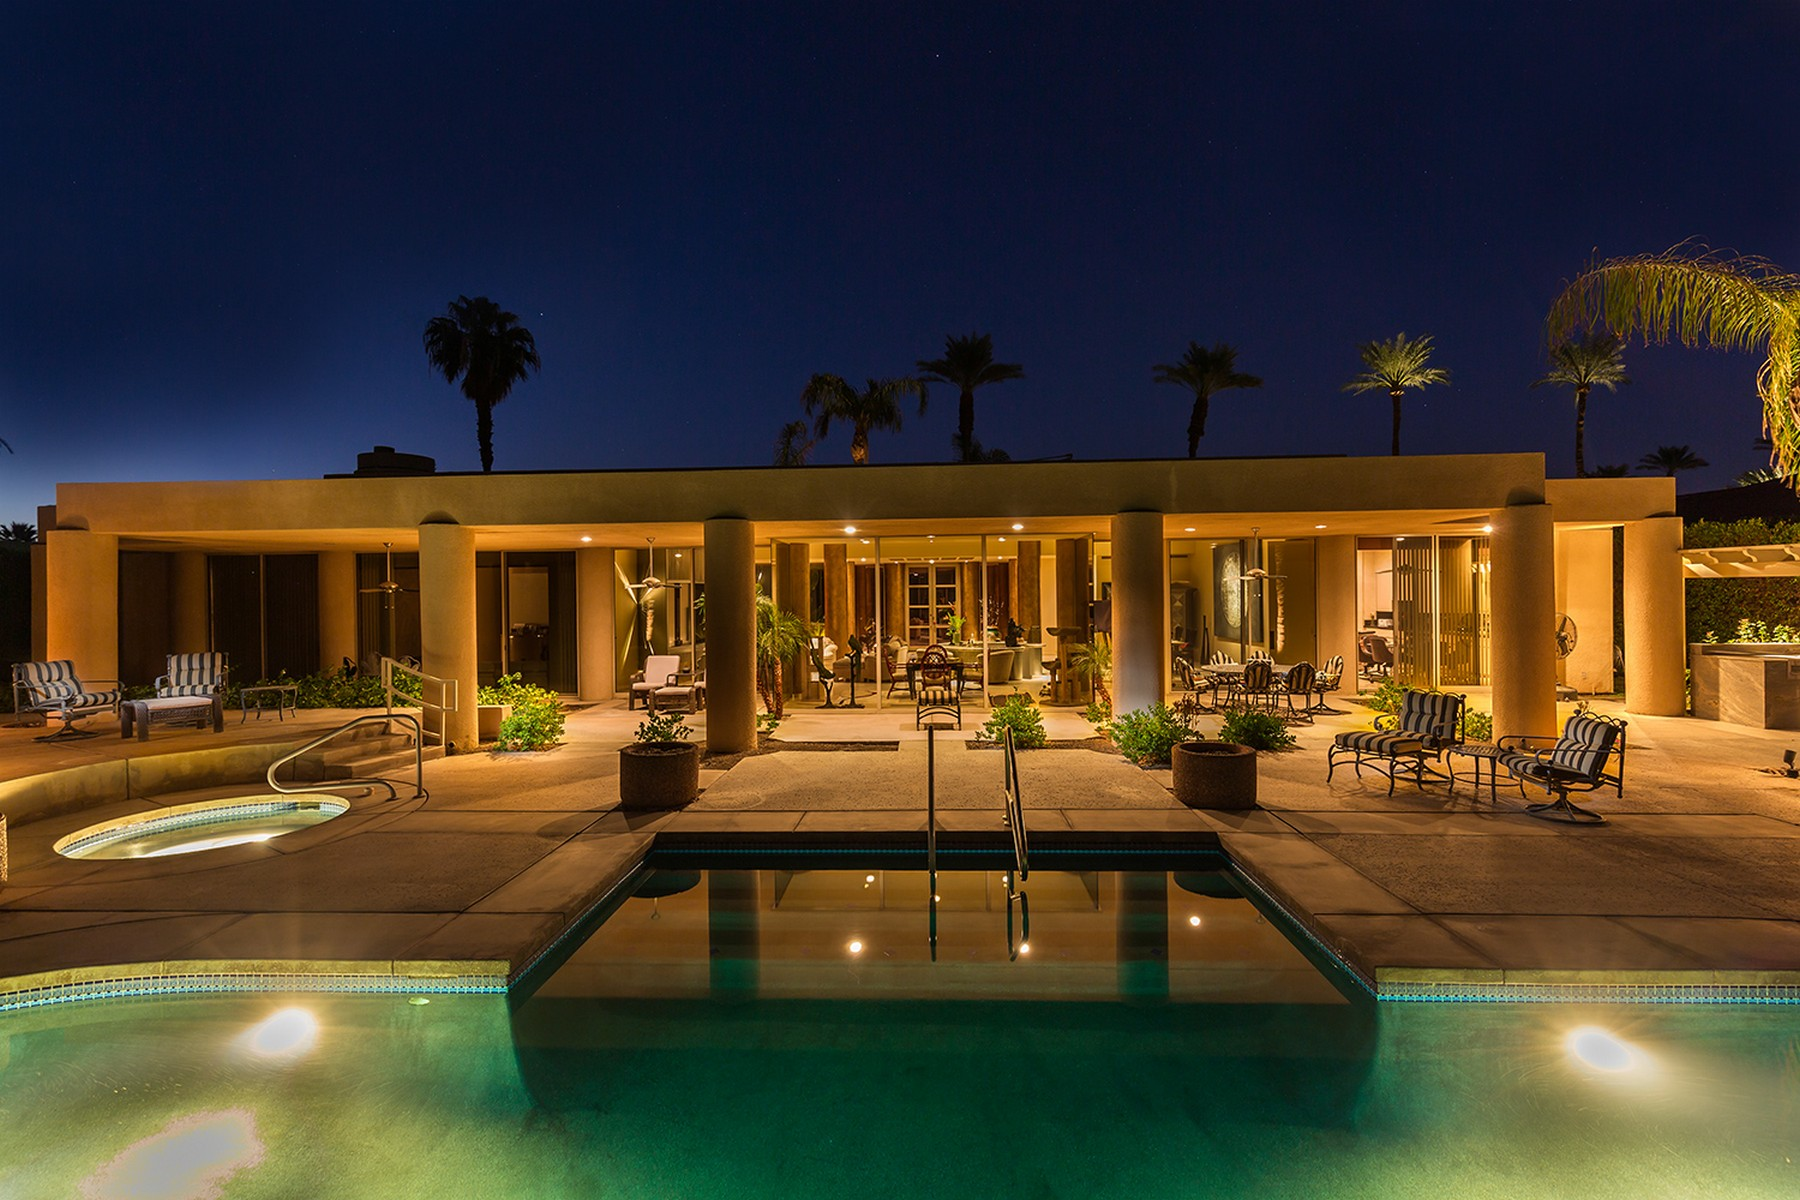 Villa per Vendita alle ore 145 Waterford Circle Rancho Mirage, California, 92270 Stati Uniti